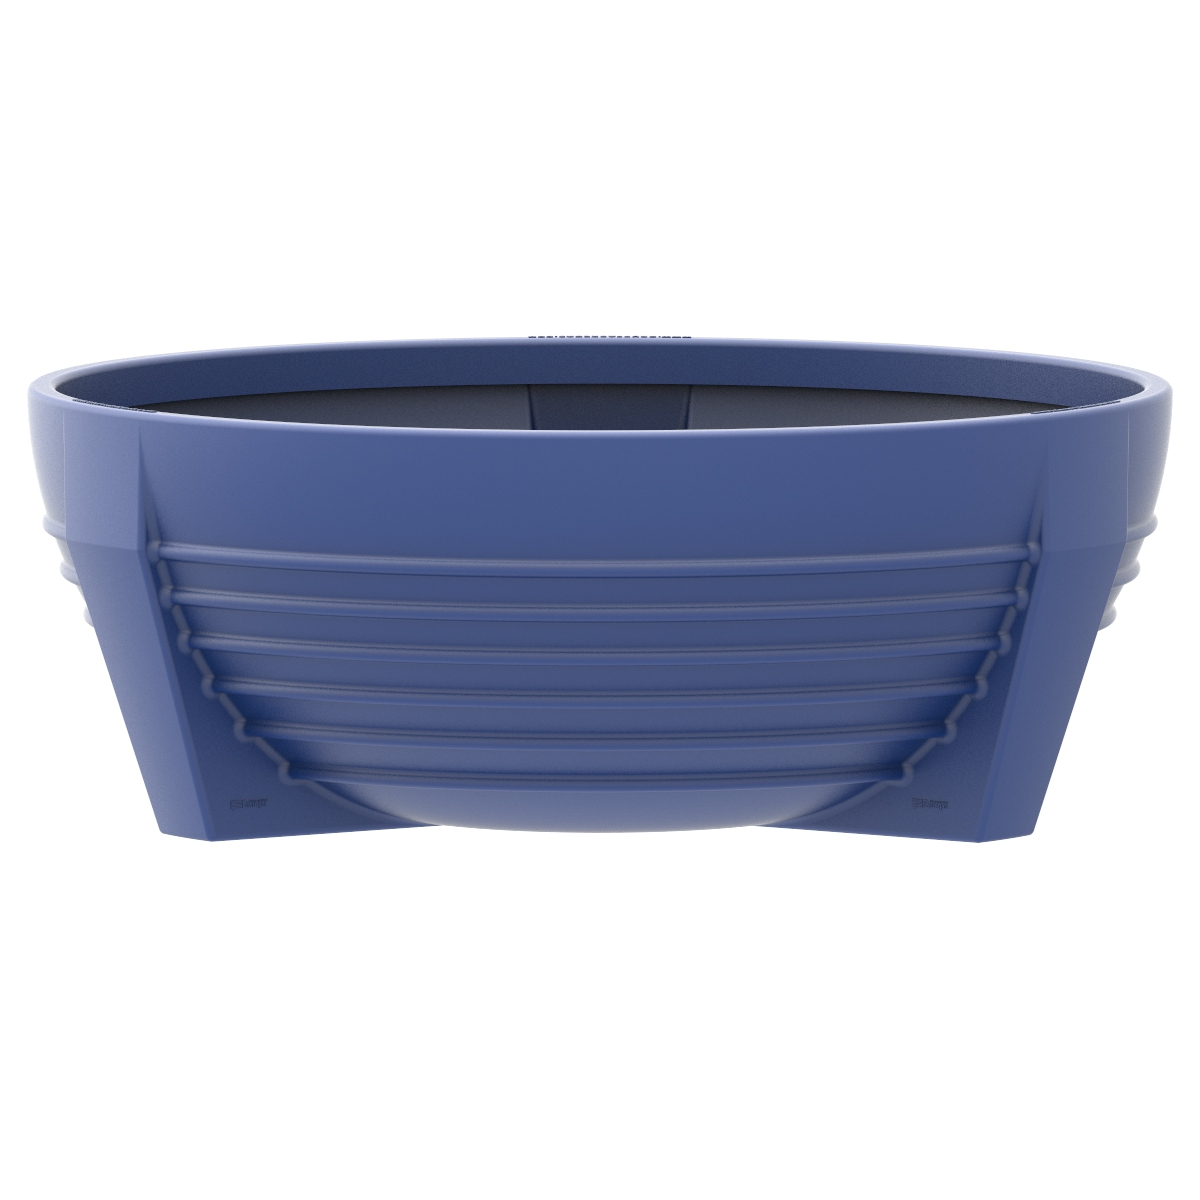 Circular blue flower box of Polypropylene futura P-300